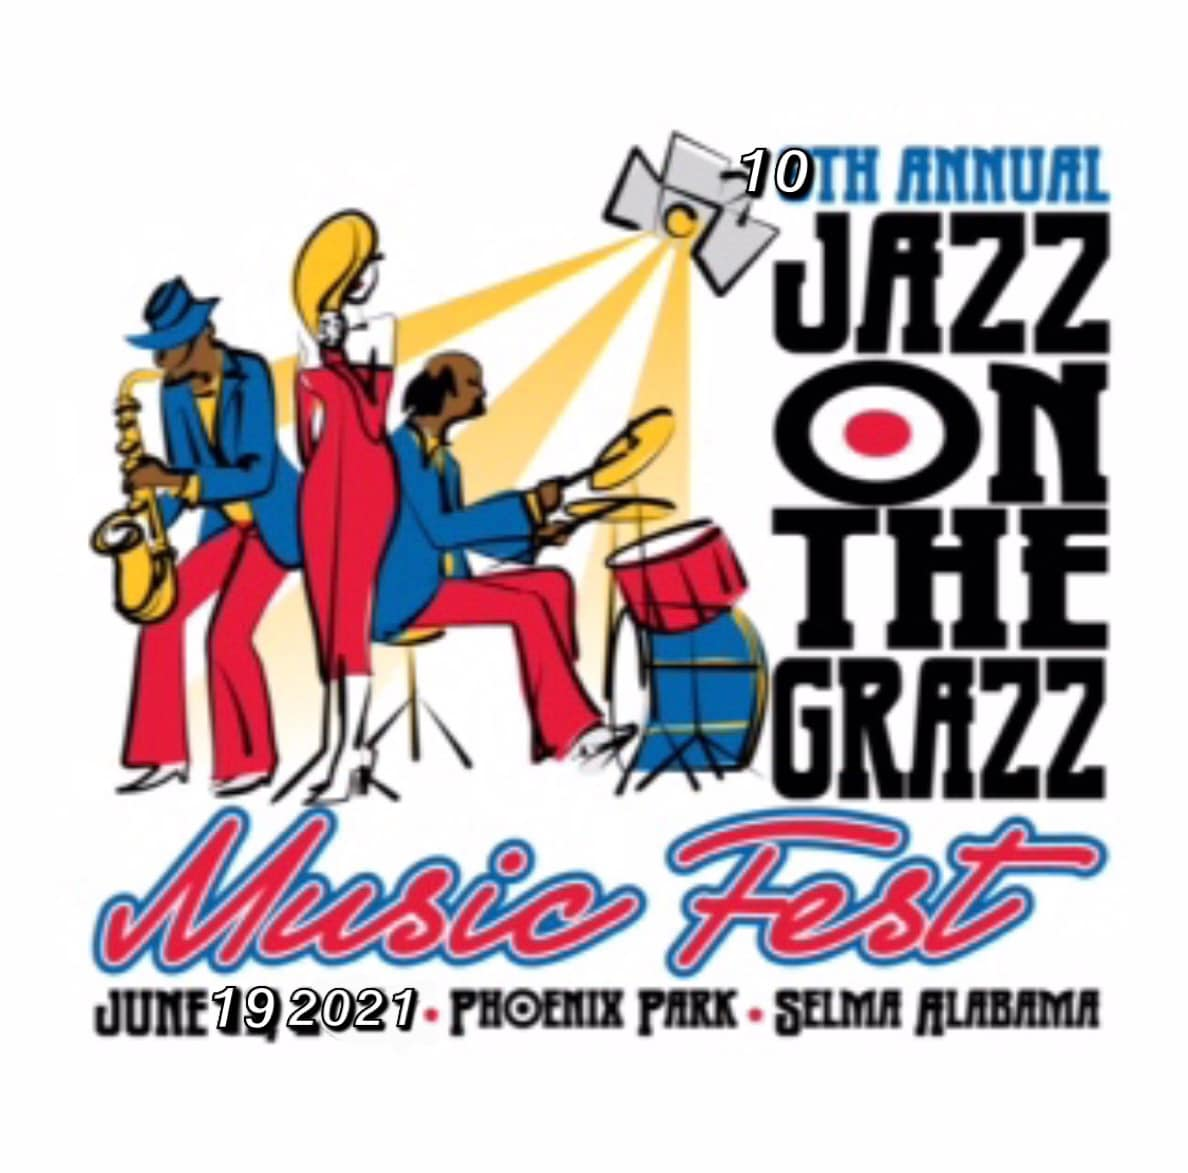 Jazz on the Grazz